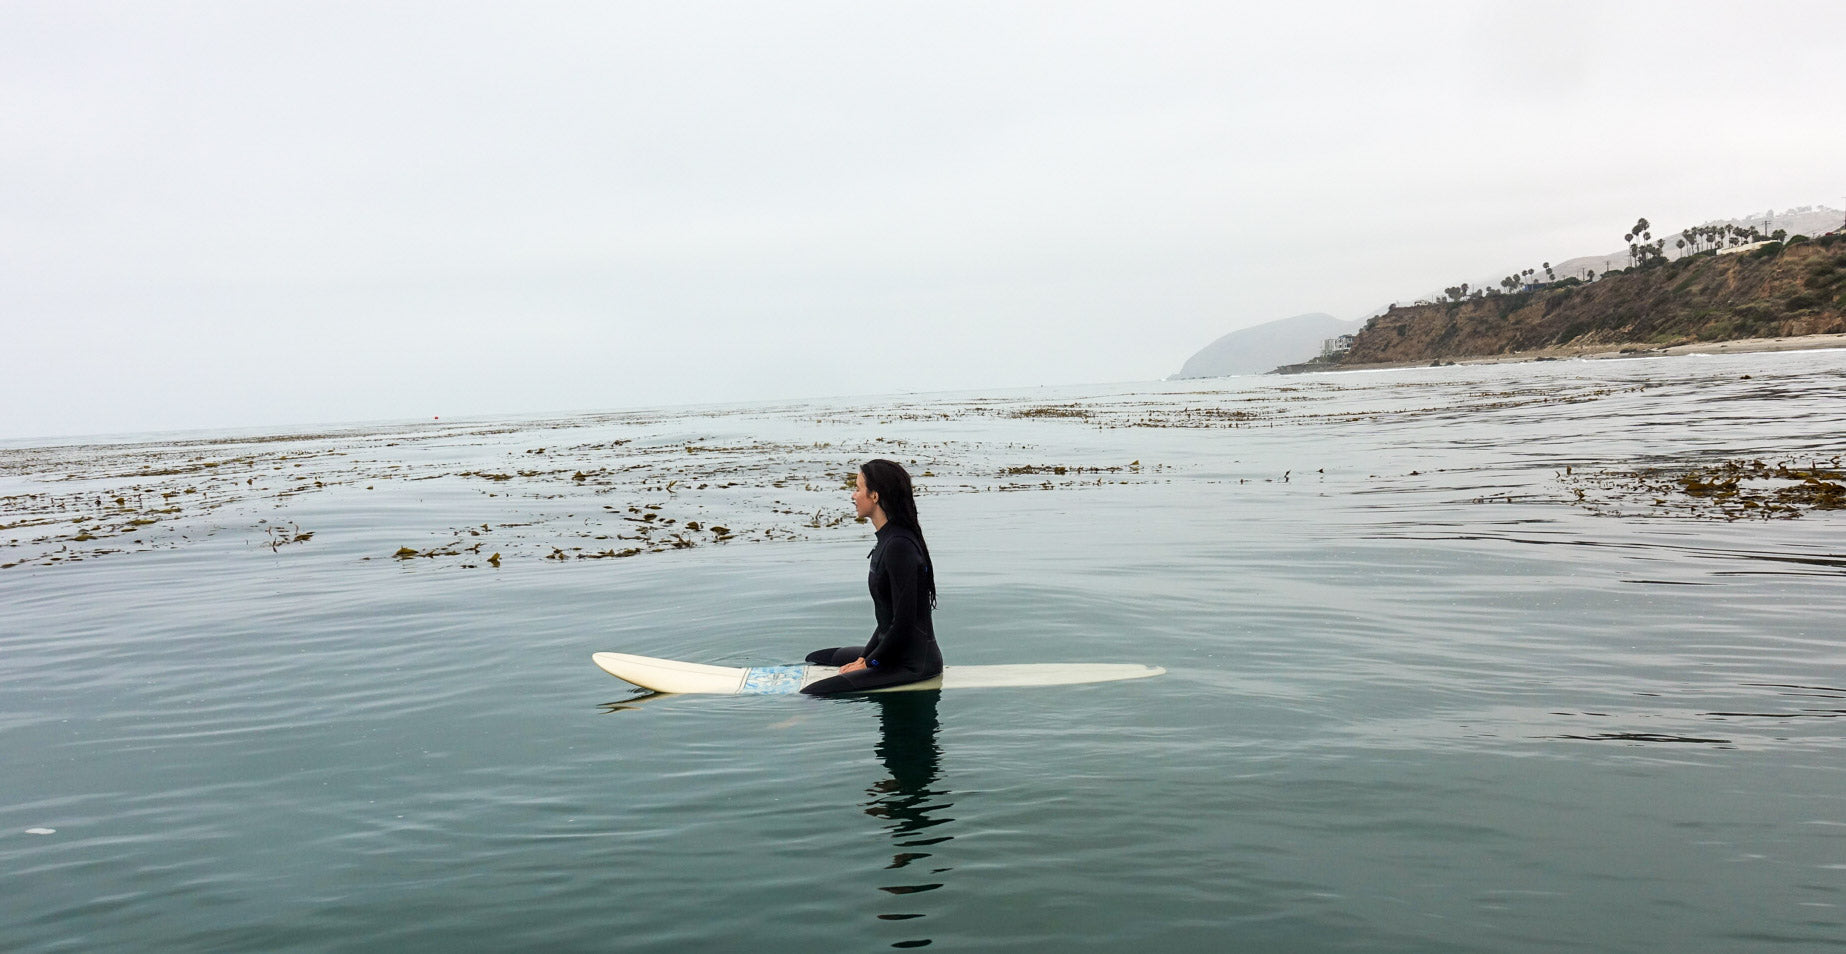 surfing among kelp beds